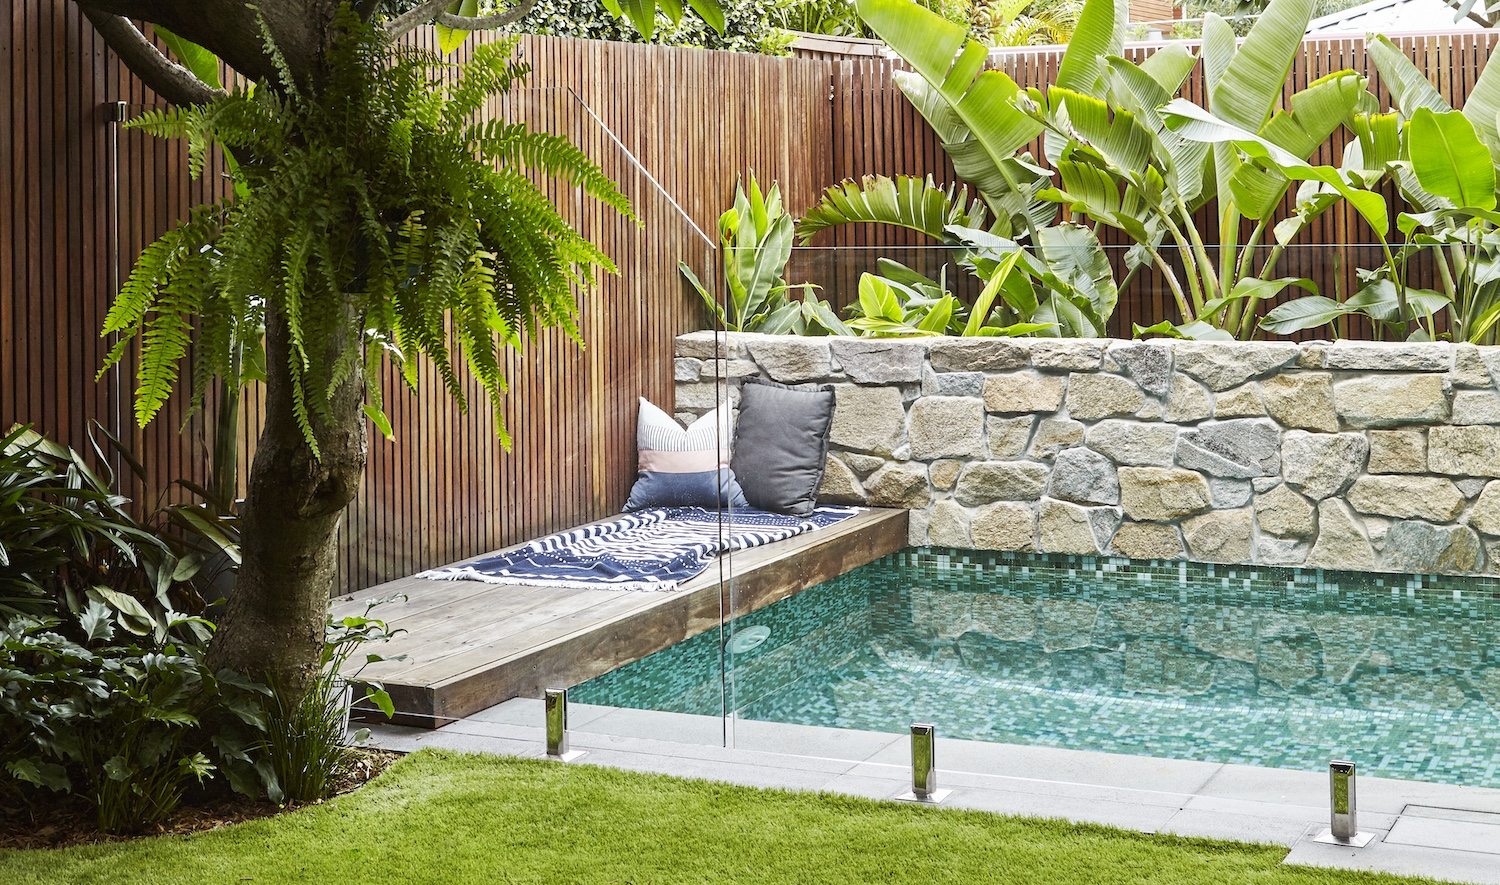 Foliage can add life to your poolside space | Harrisons Landscaping